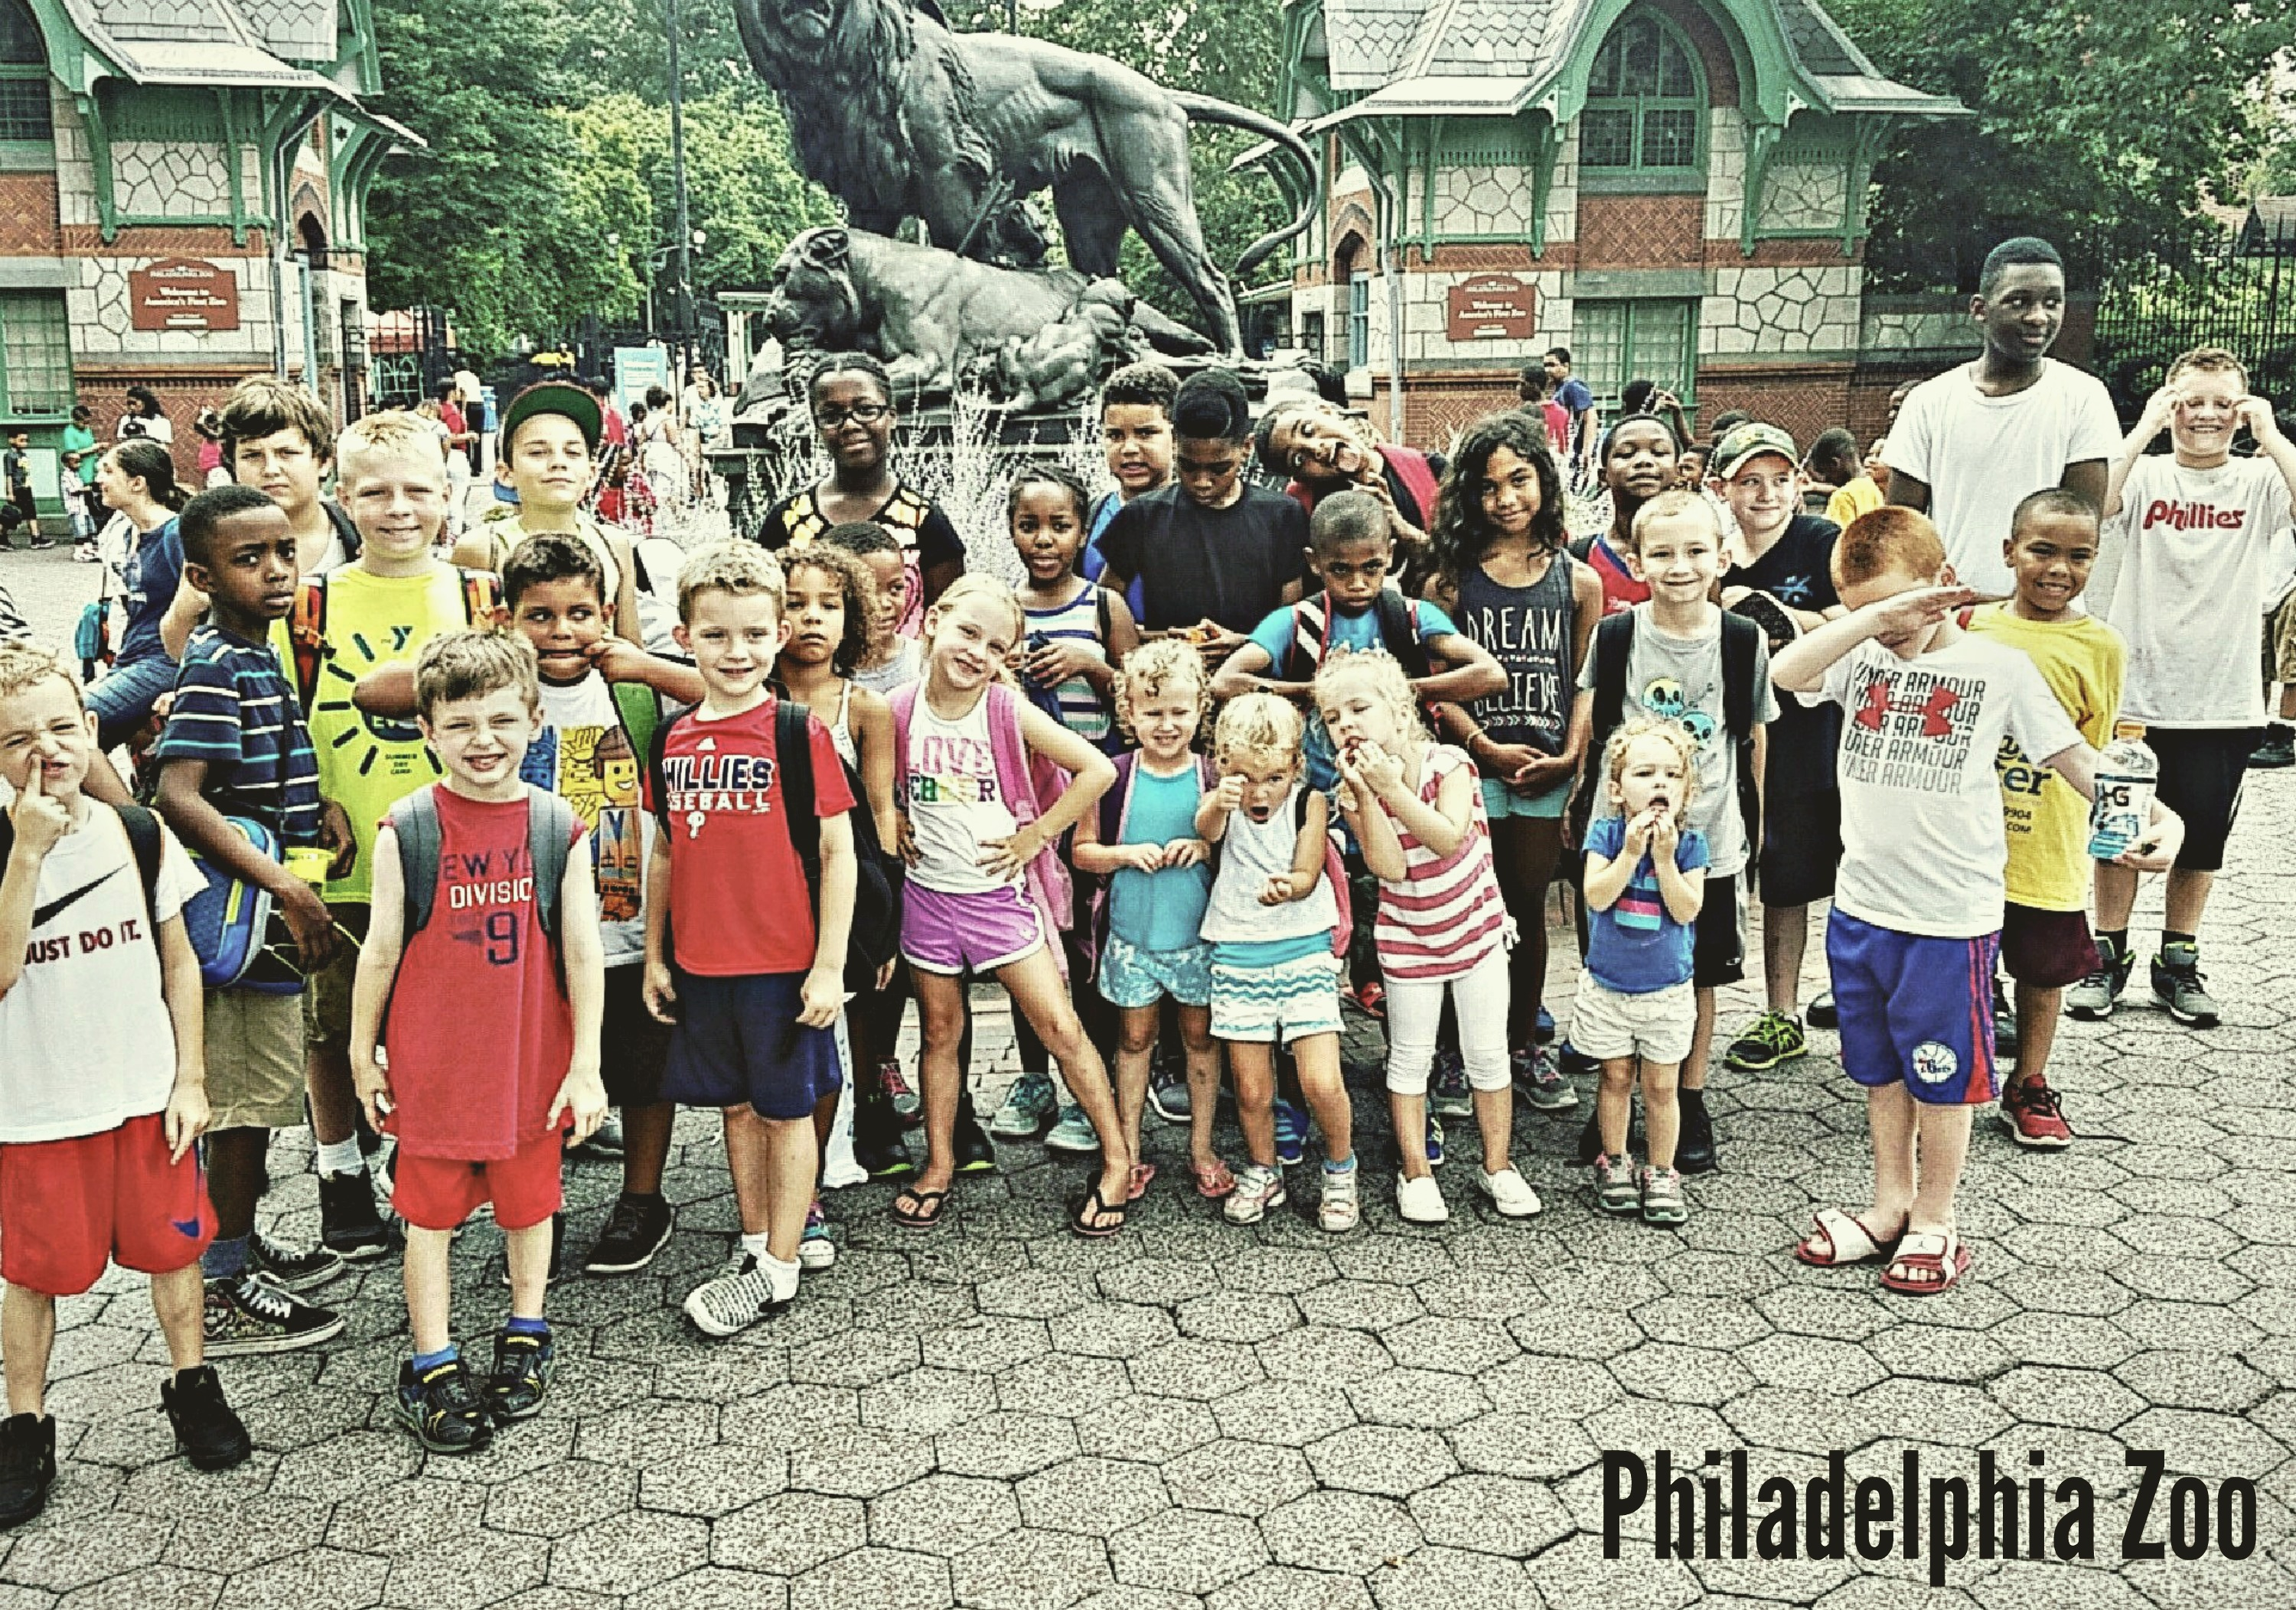 EastFallsLocal trip to zoo July 14 2016 resize txt fade